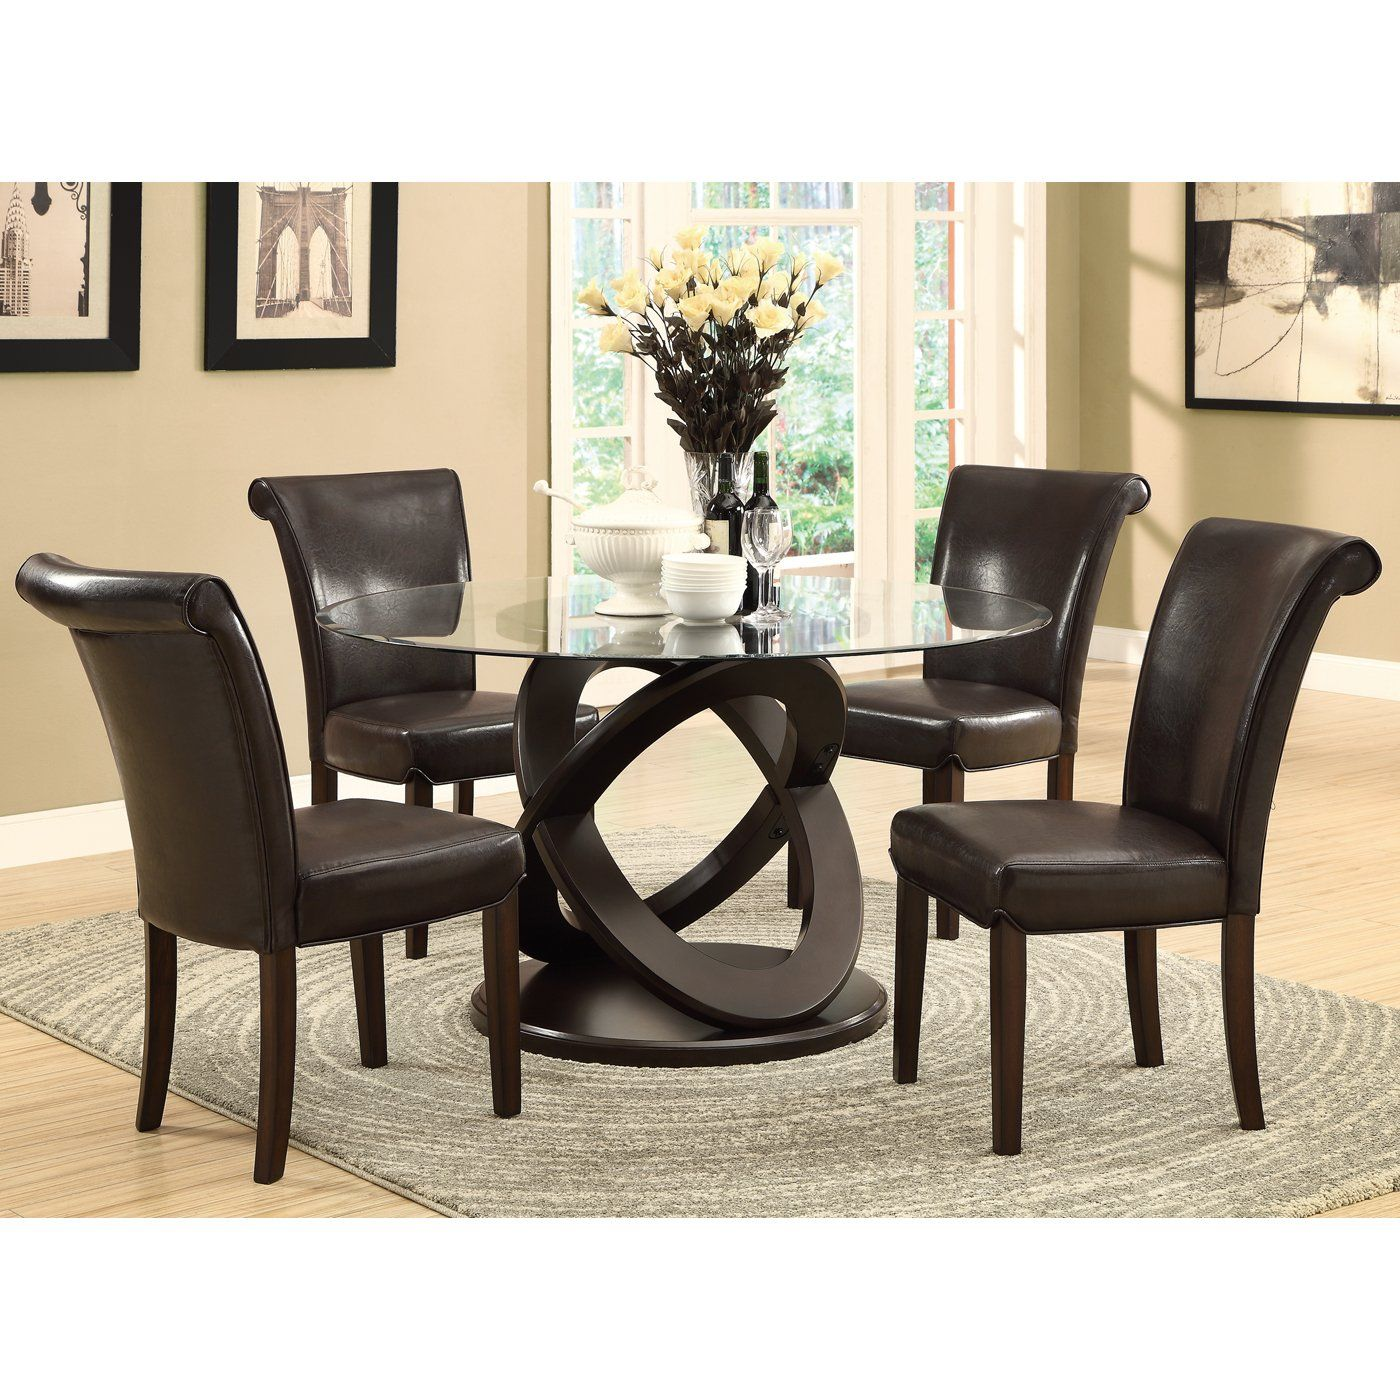 Shop Monarch Specialties I 1749 Olympic Ring Style Dining